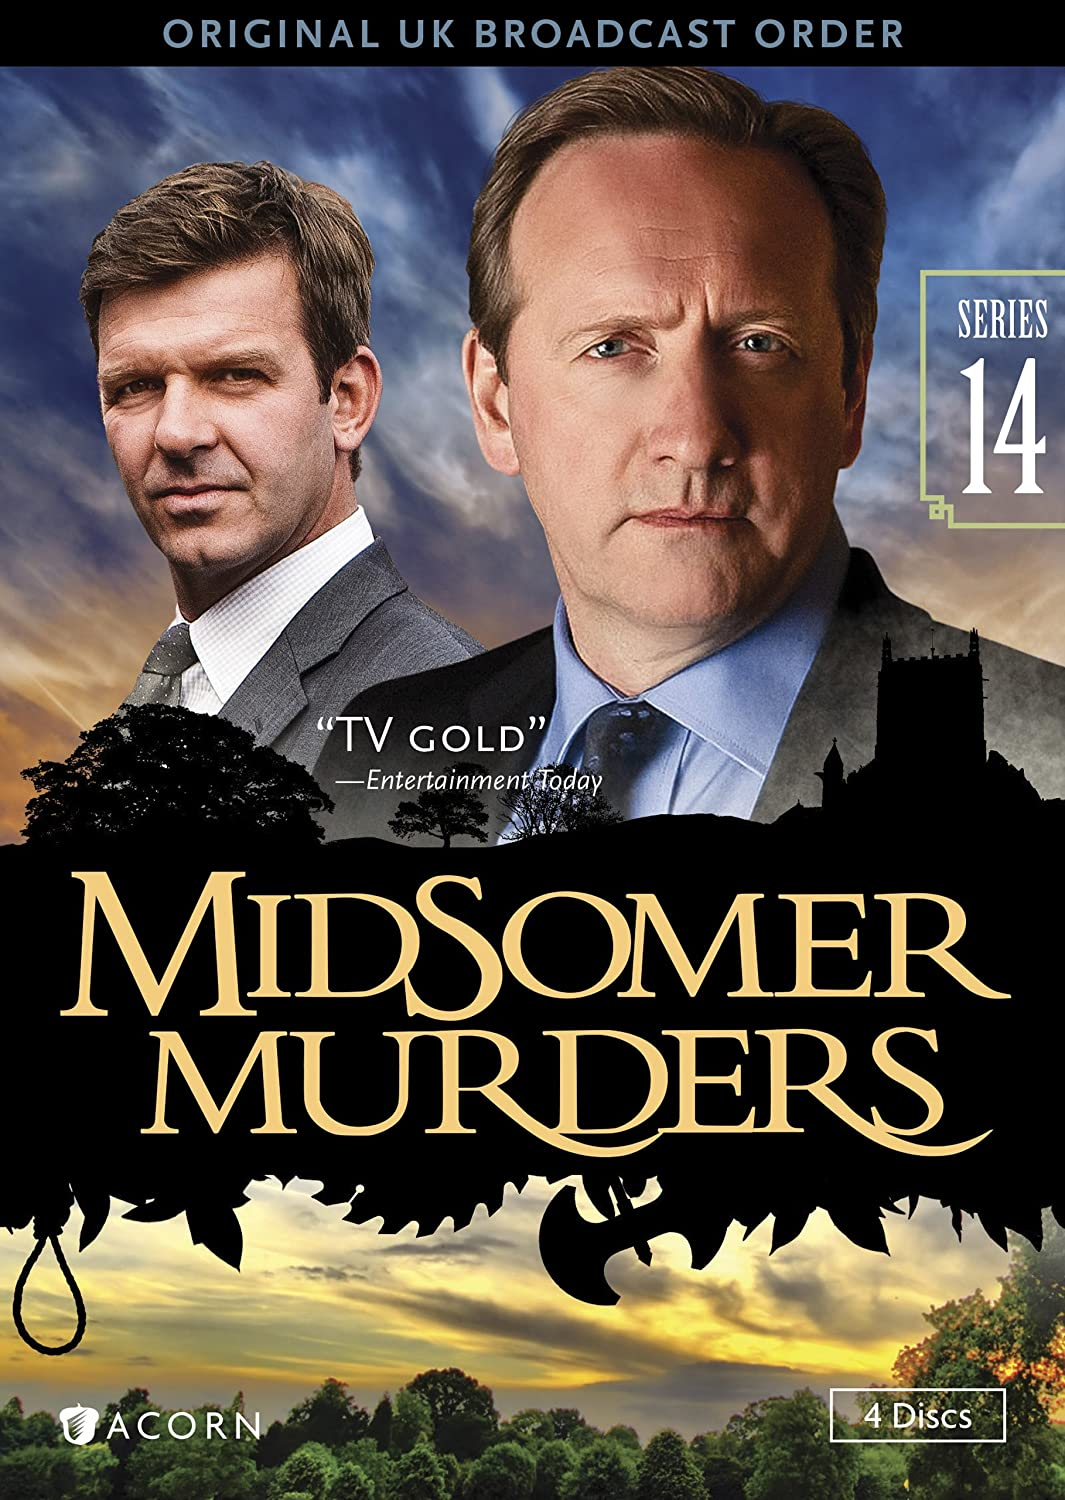 Amazon Com Midsomer Murders Series 14 Reissue Neil Dudgeon Jason Hughes Nick Laughland Simon Langton Renny Rye Richard Holthouse Movies Tv